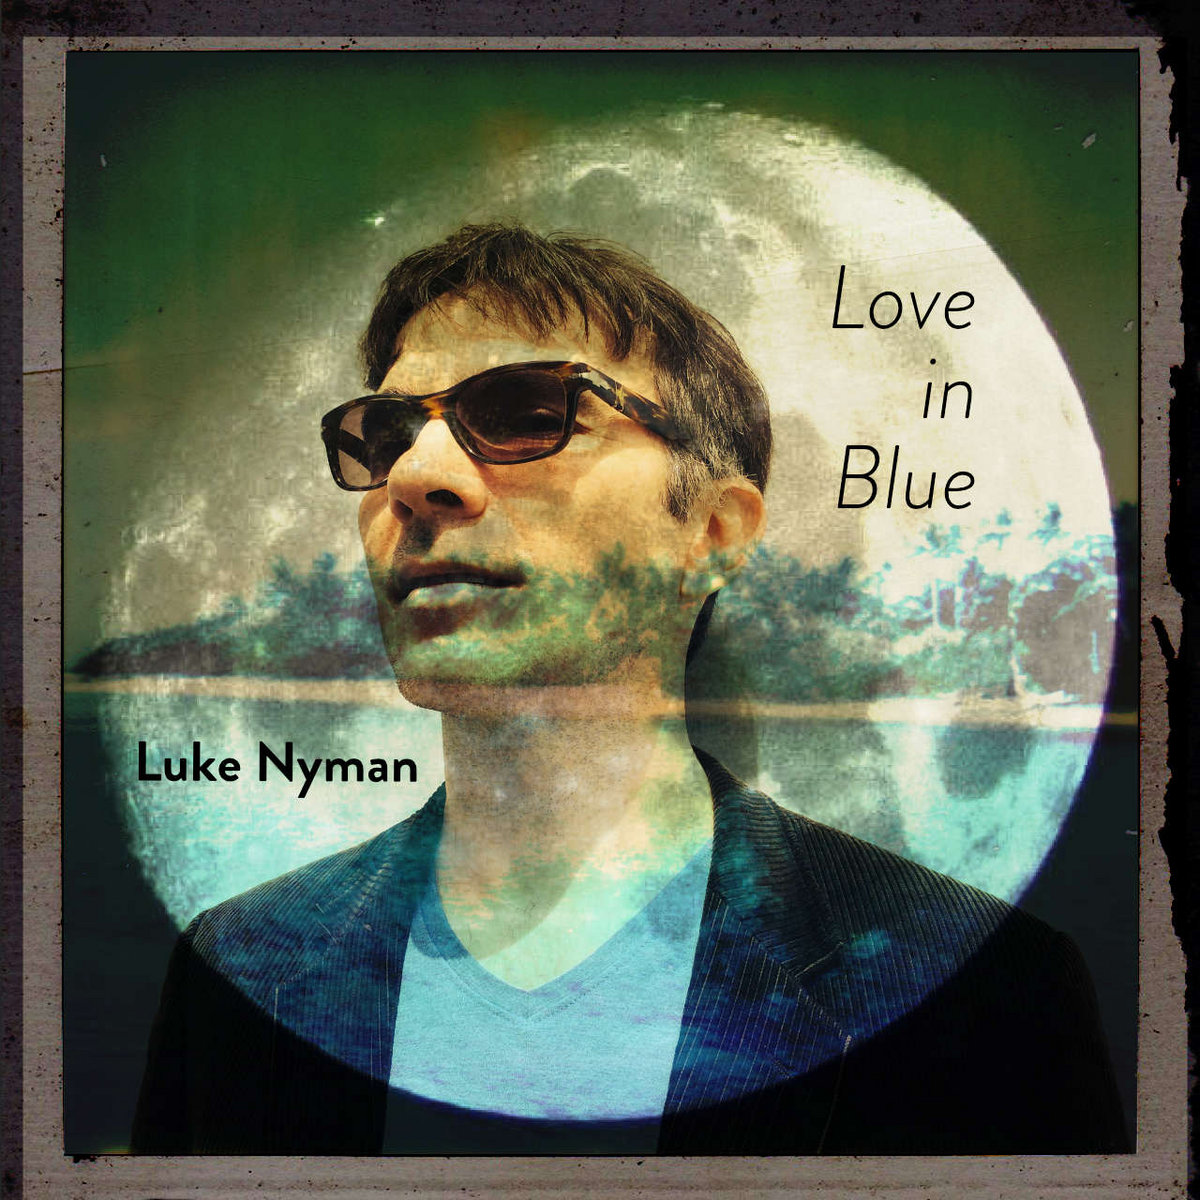 Love in Blue by Luke Nyman